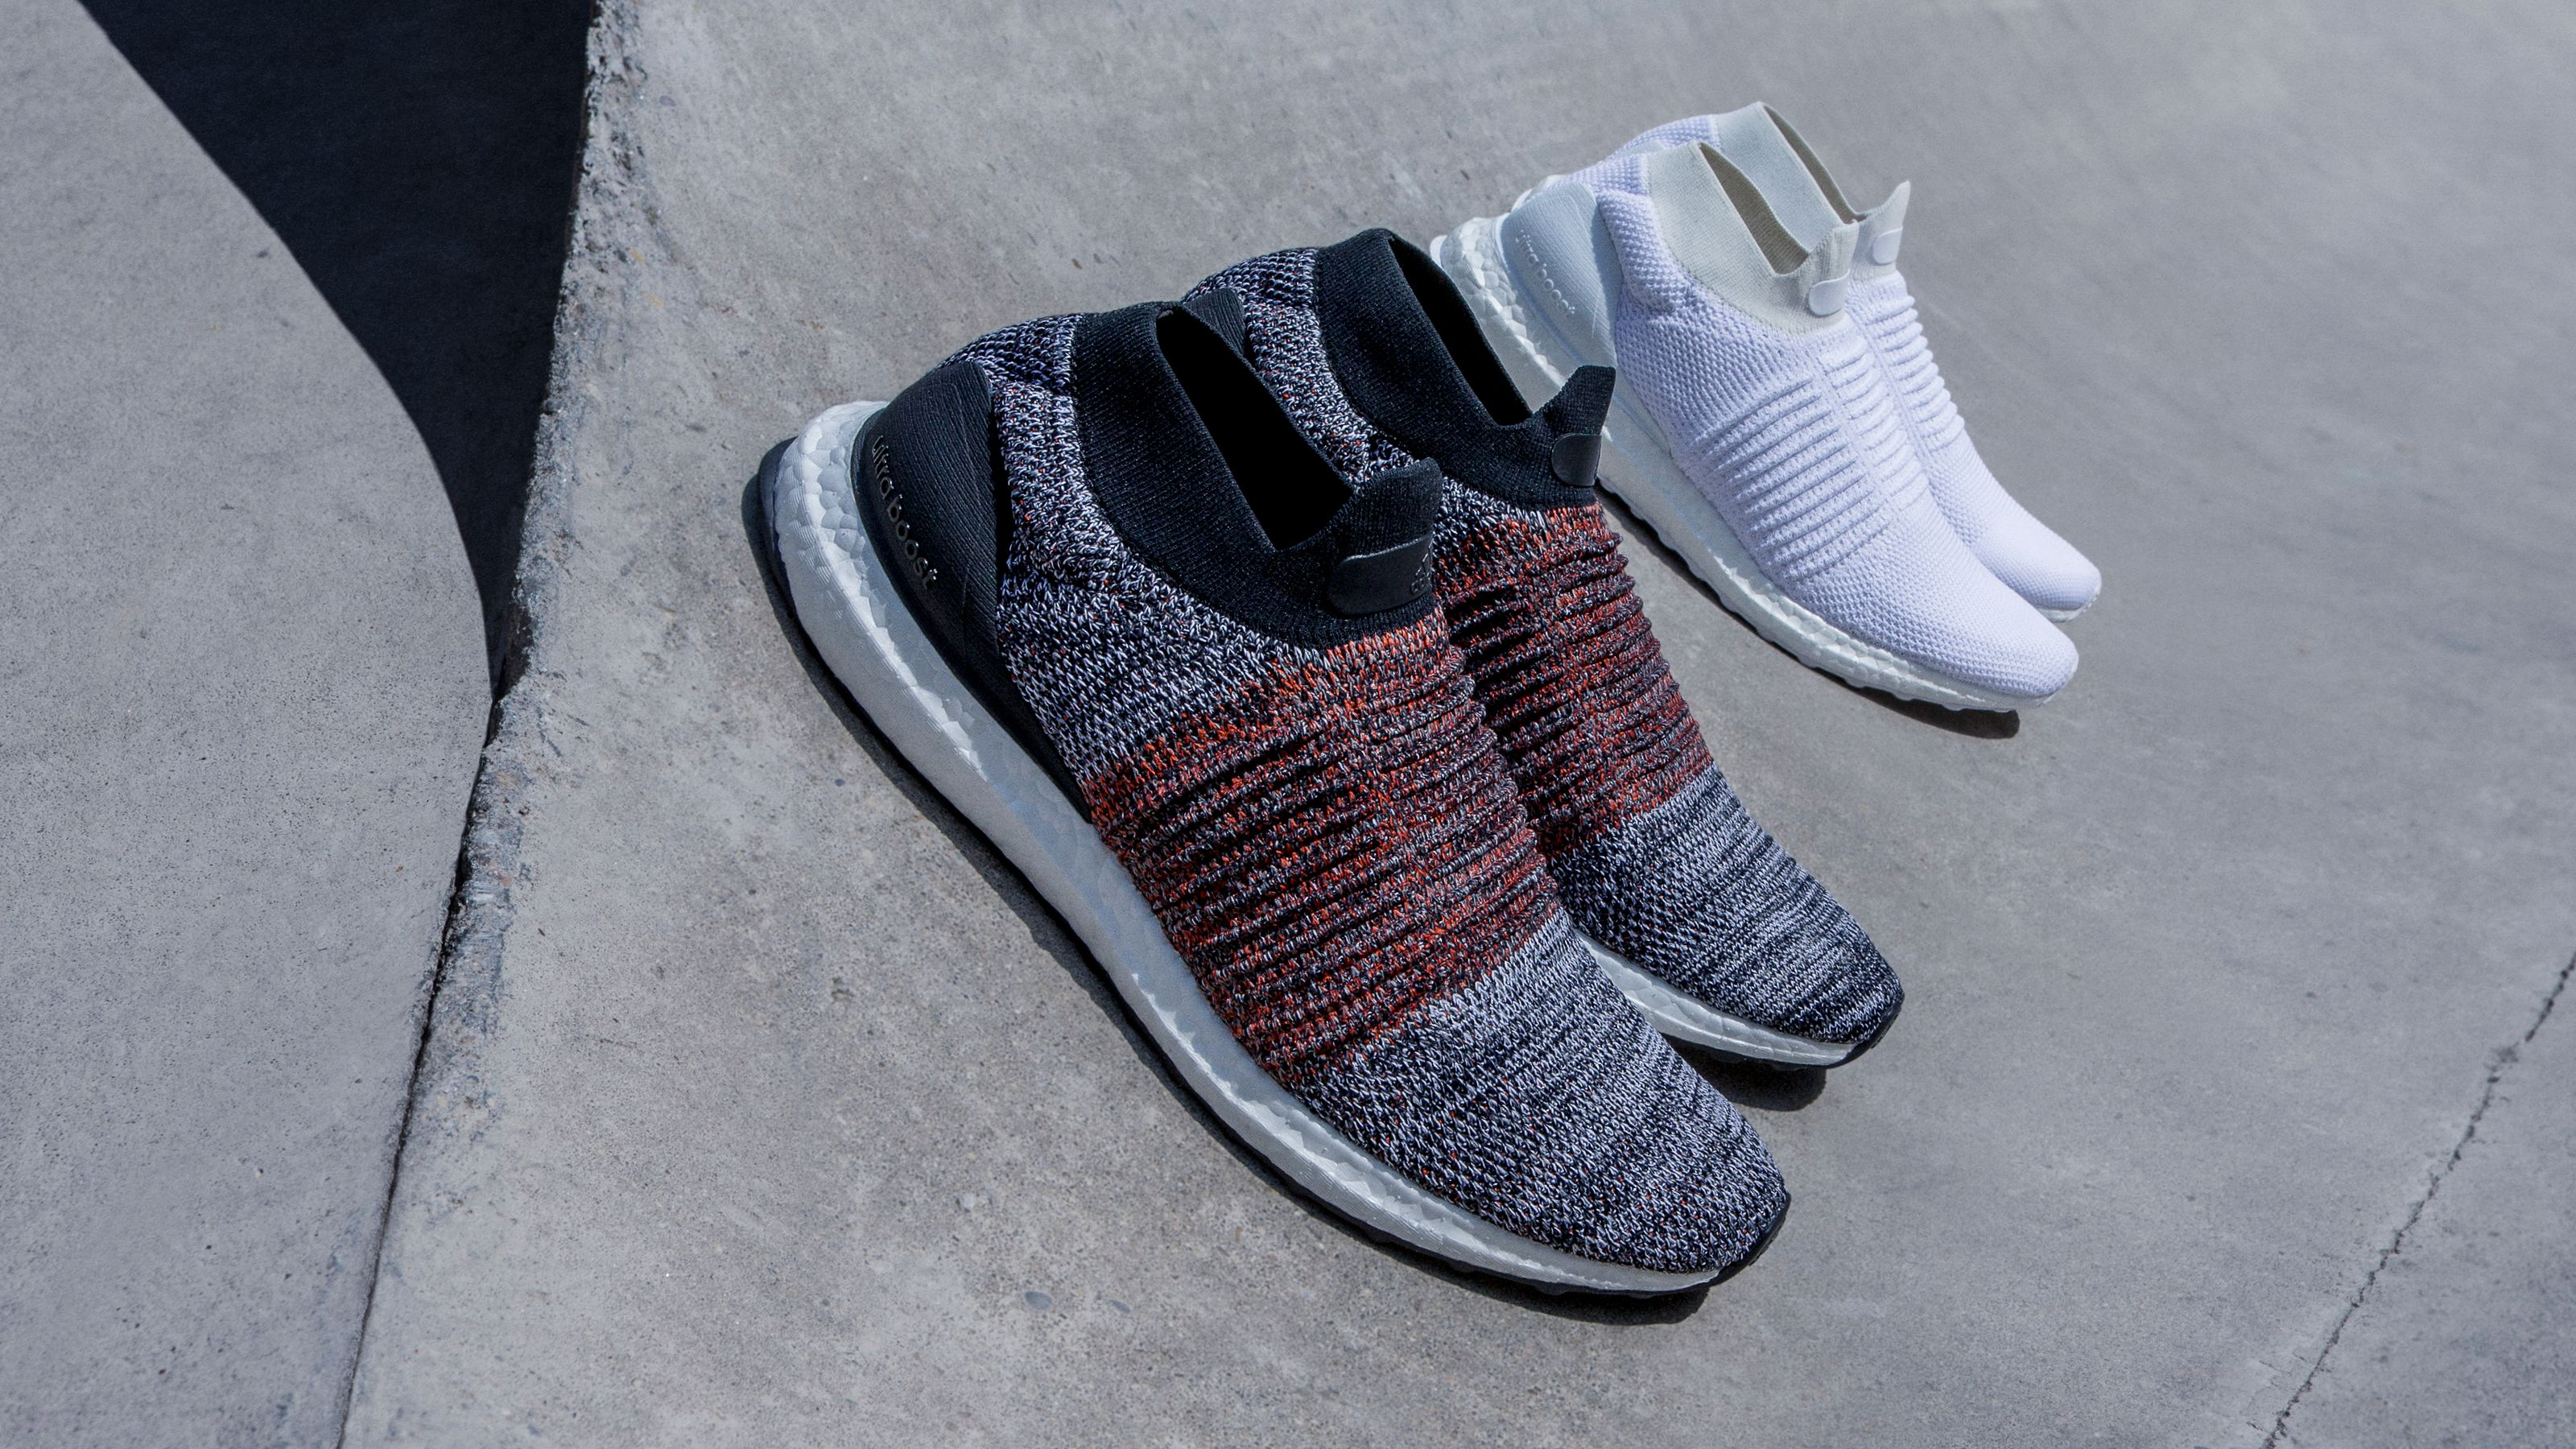 c64a127a4 Adidas Launches Laceless UltraBoost - We Needed This Laceless Ultraboost